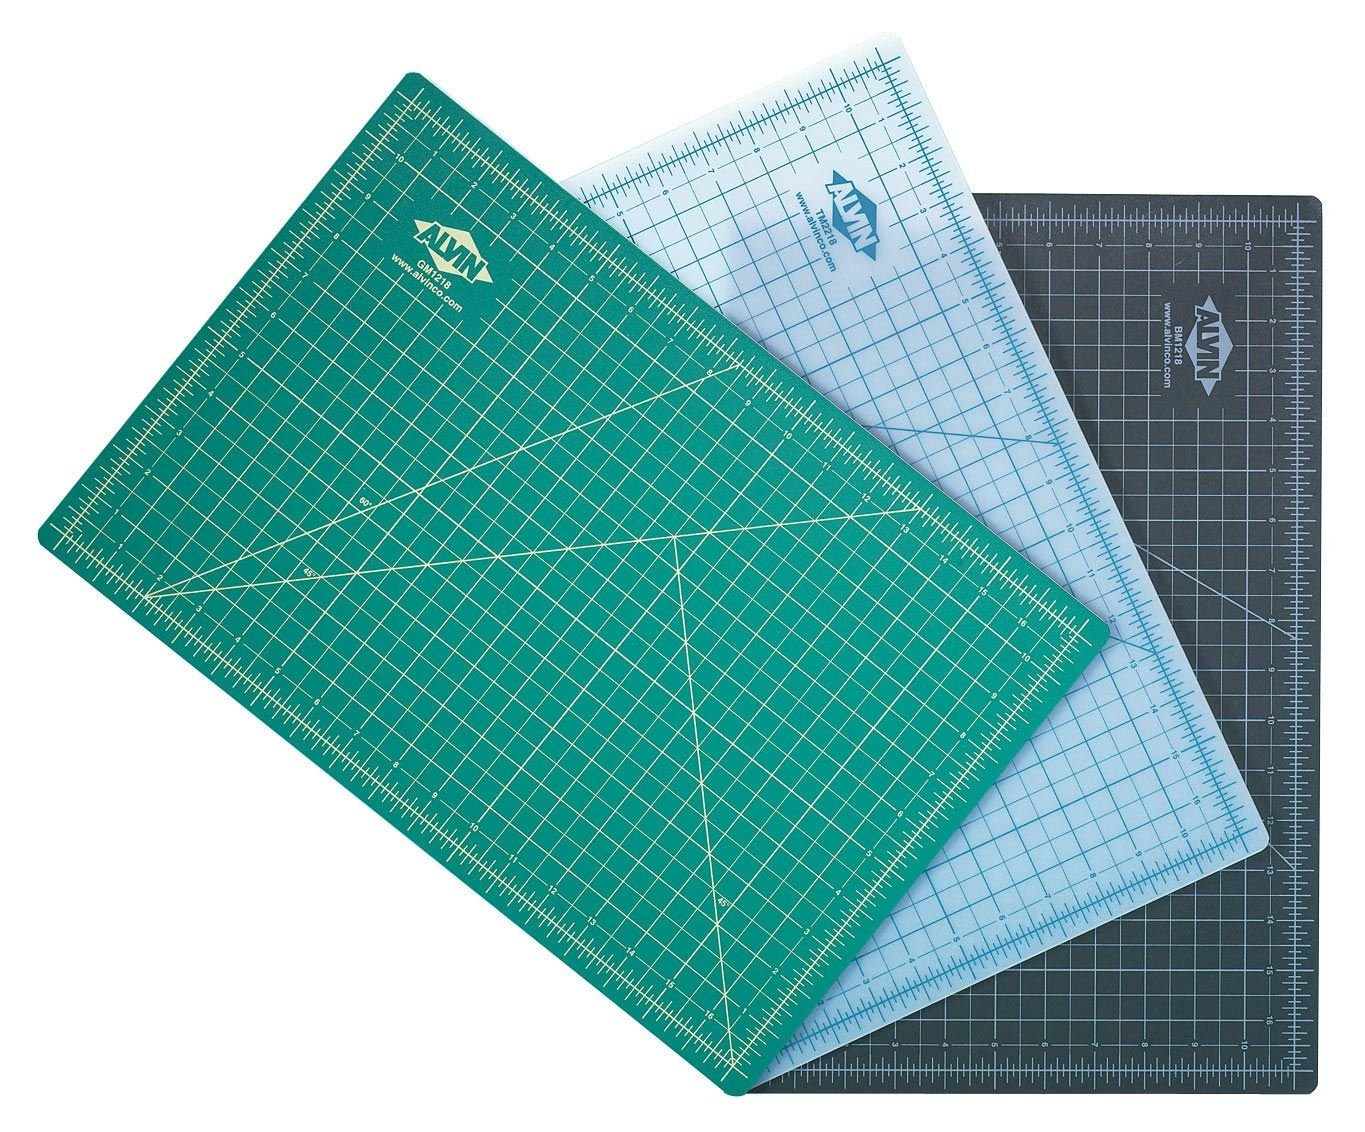 Alvin, Translucent Professional Cutting Mat, Self-Healing and Double Sided - 30 x 42 Inches by Alvin